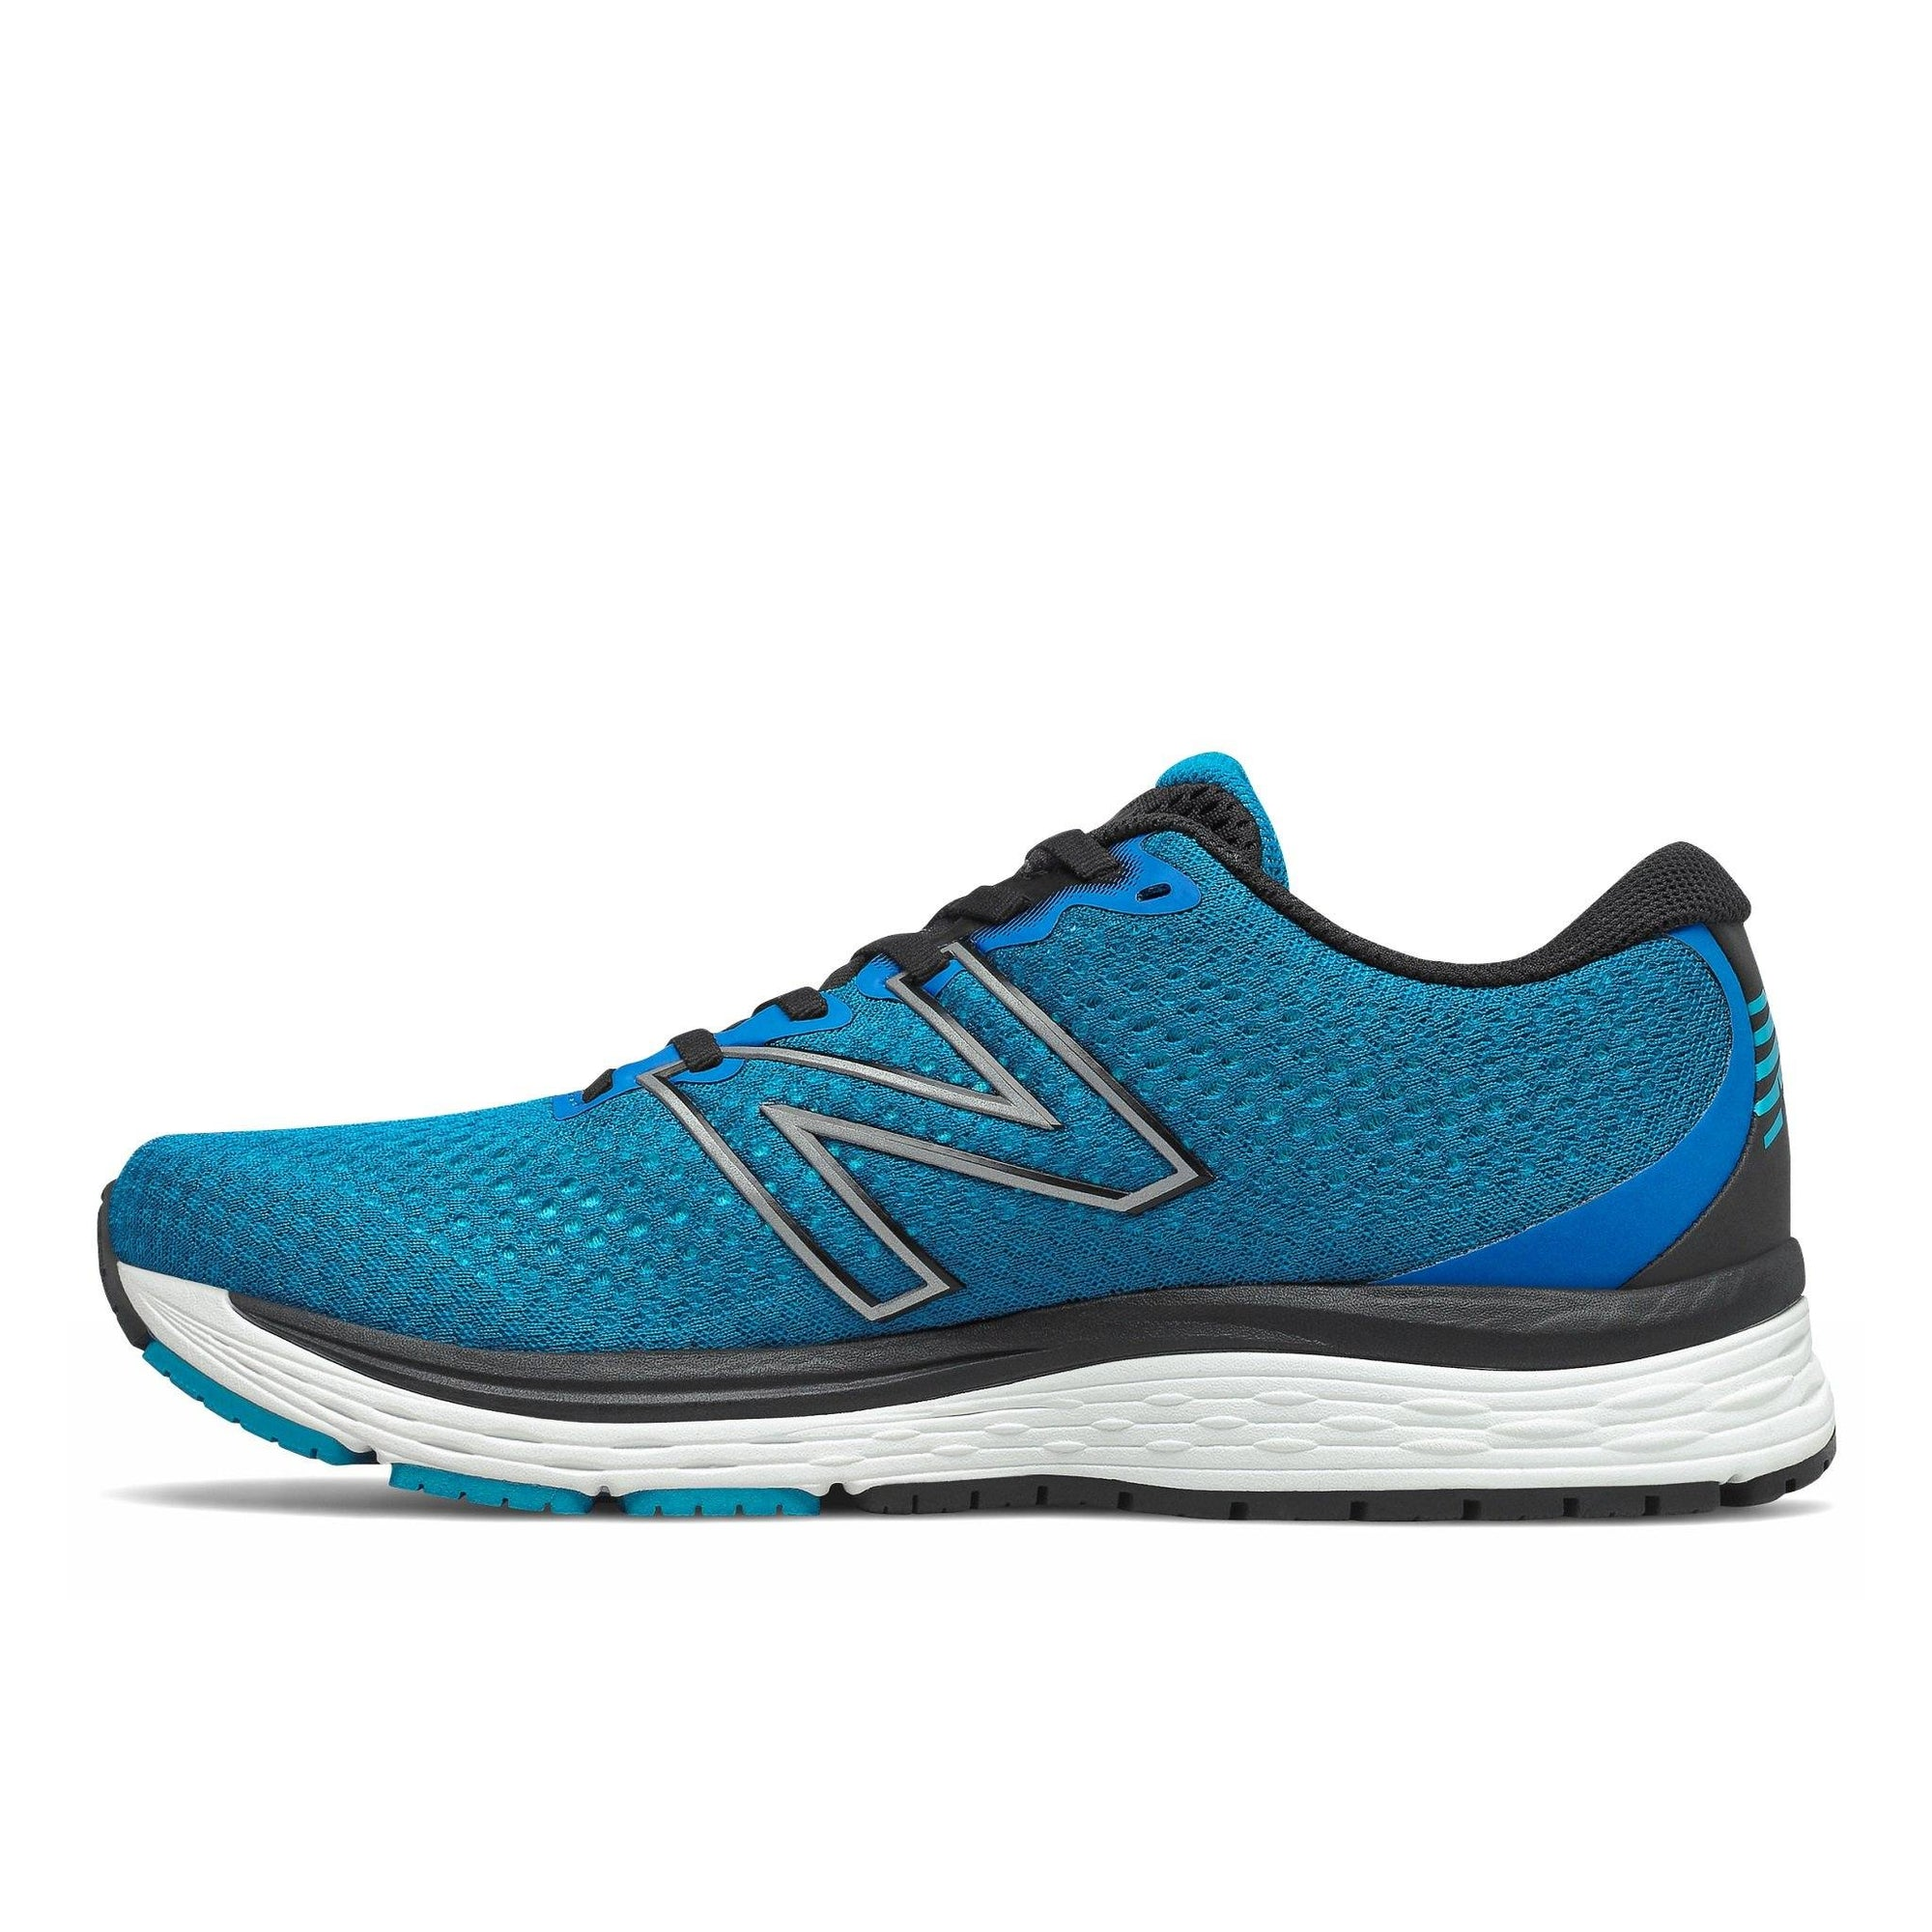 New Balance Men's Solvi v3 Running Shoe - Wave Blue/Light Rogue Wave SP-Footwear-Mens New Balance